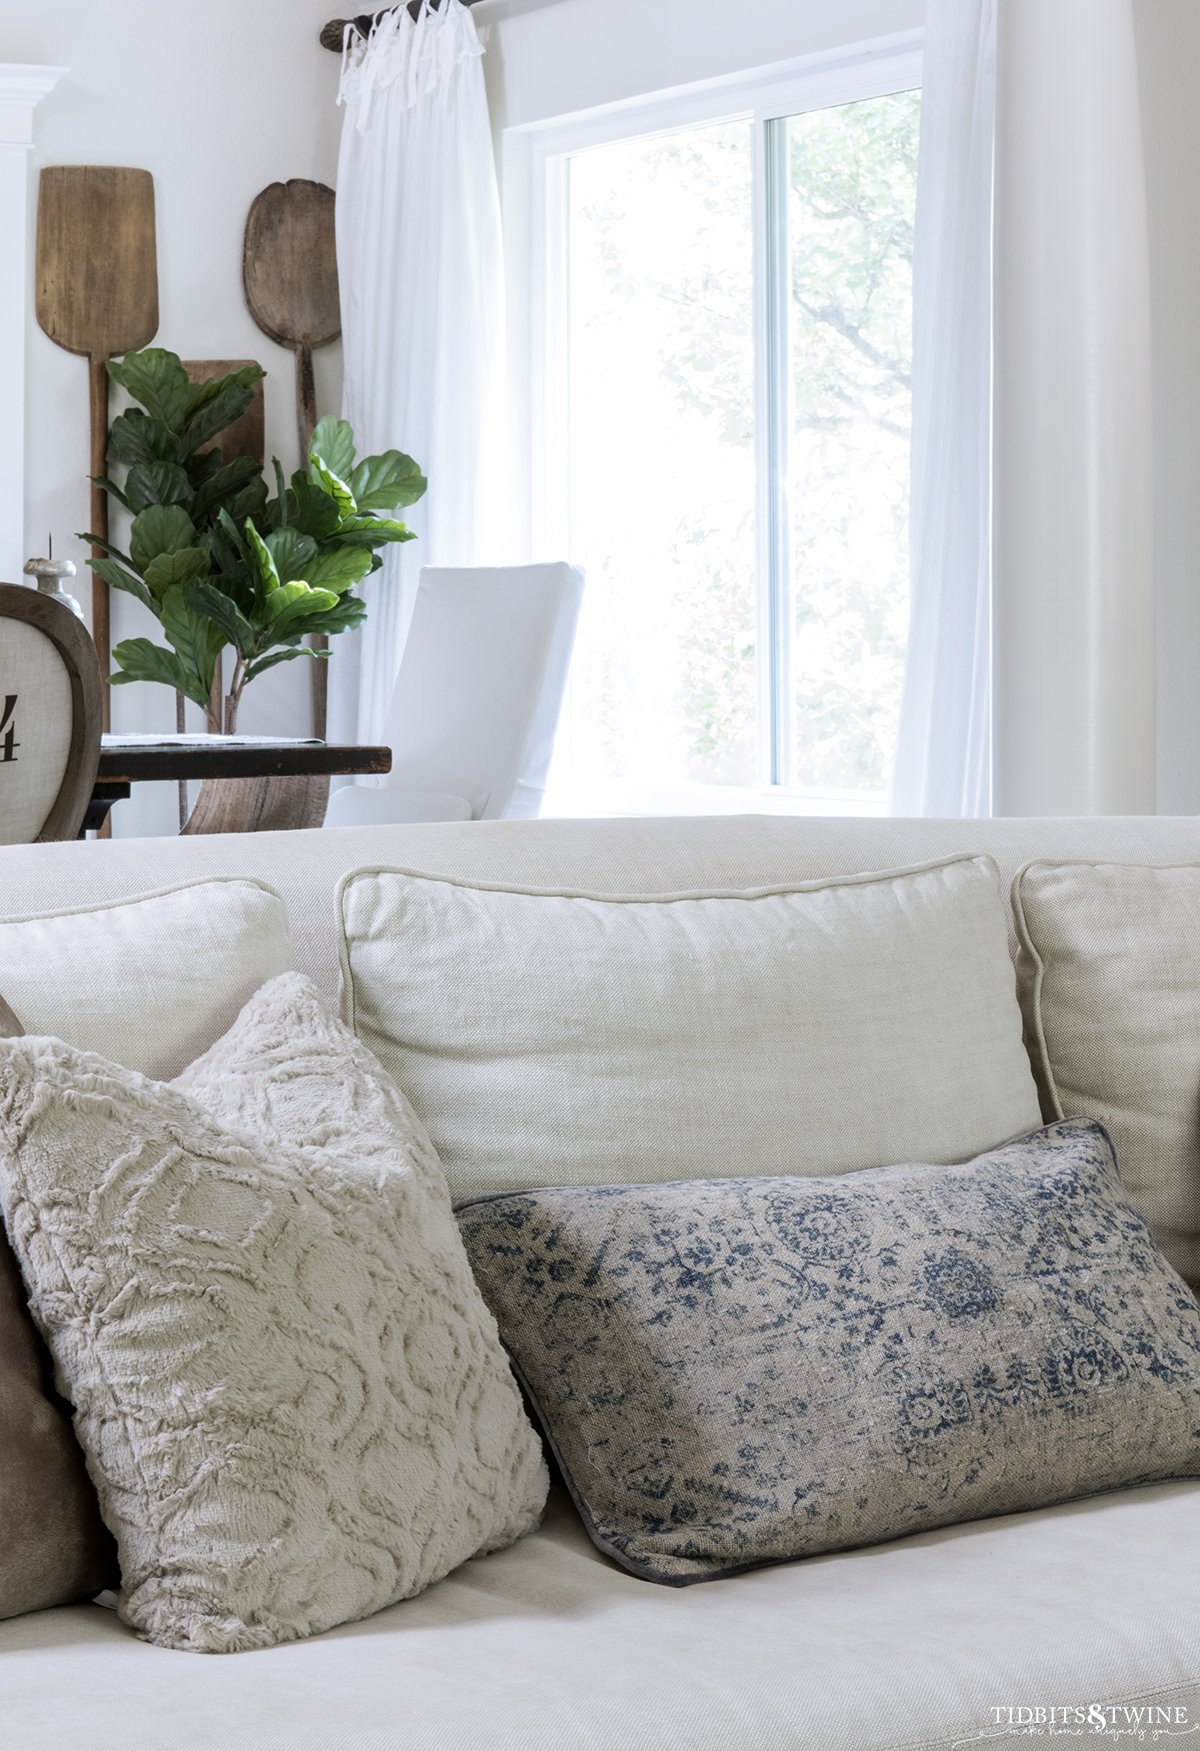 beige linen slipcovered sofa with throw pillows in beige faux fur and vintage lumbar pillow